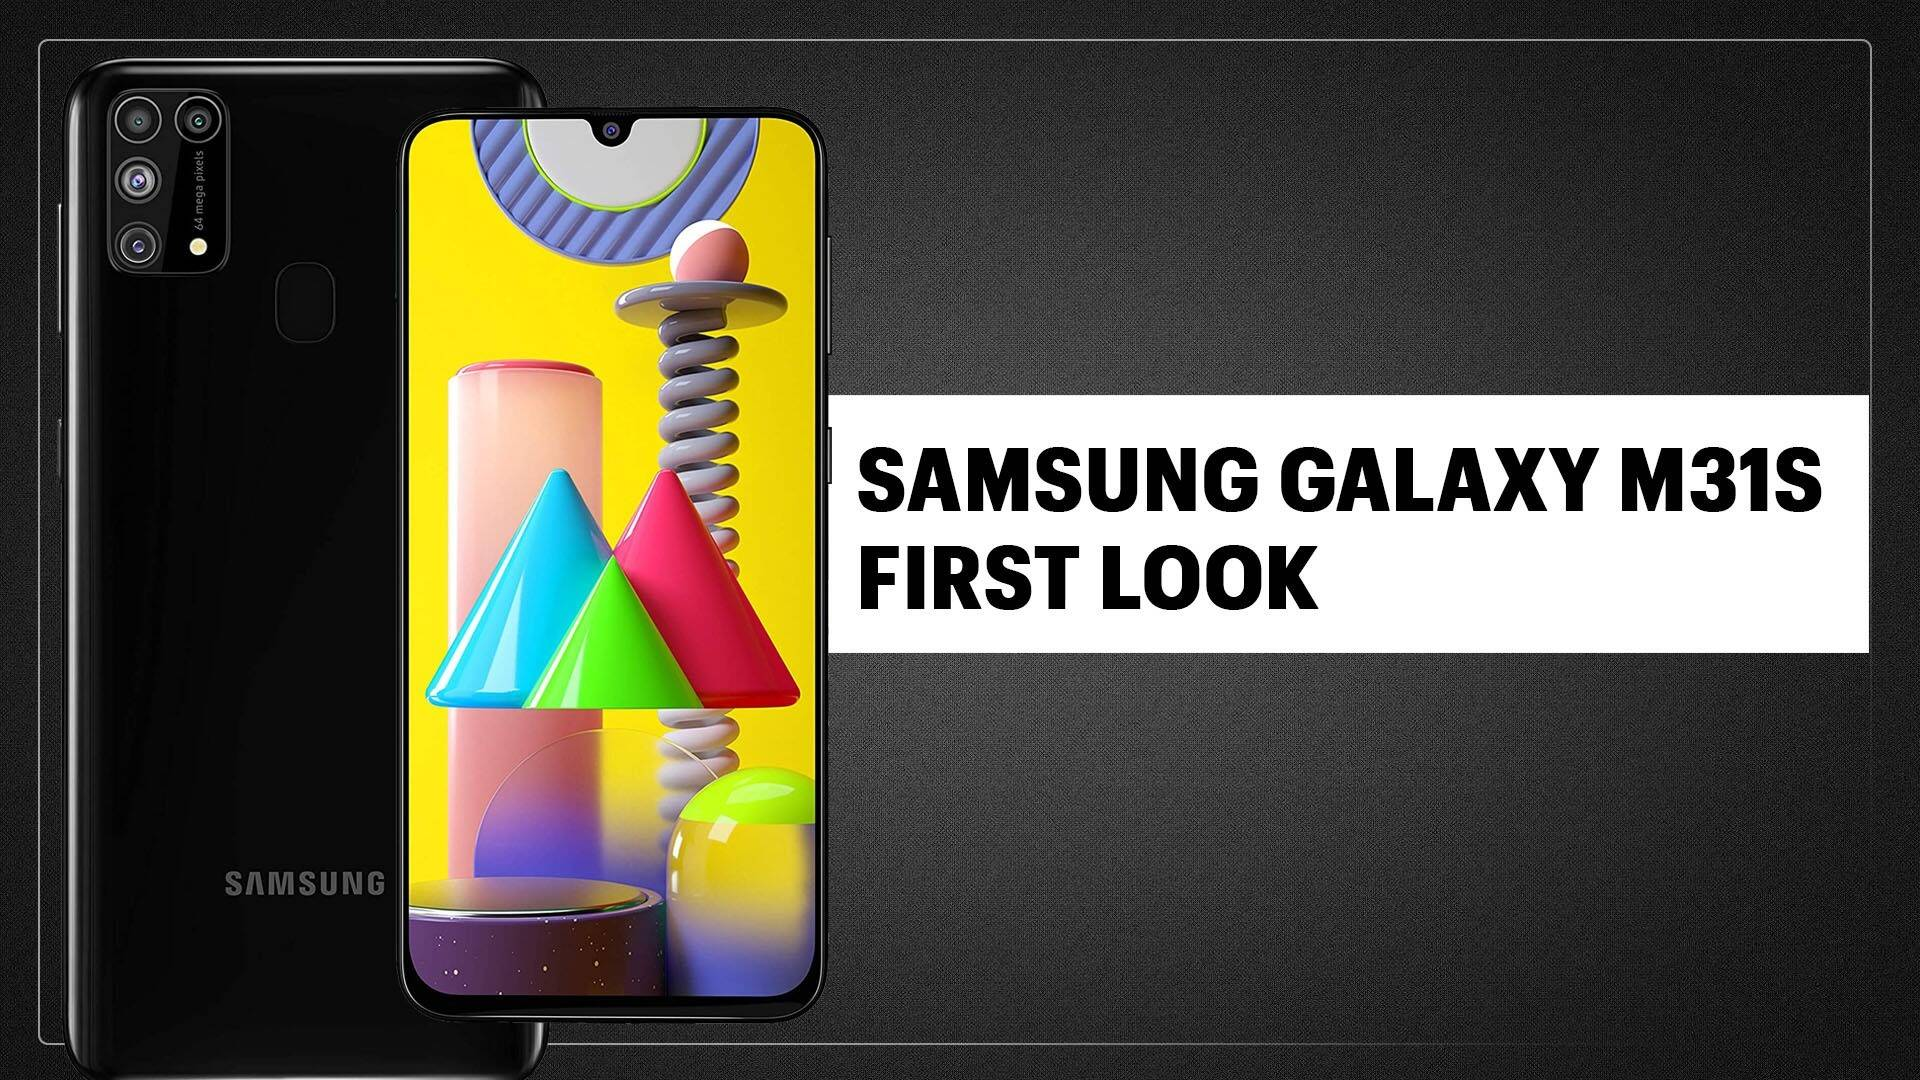 Samsung Galaxy M31s First Look: Features, specifications and price in India